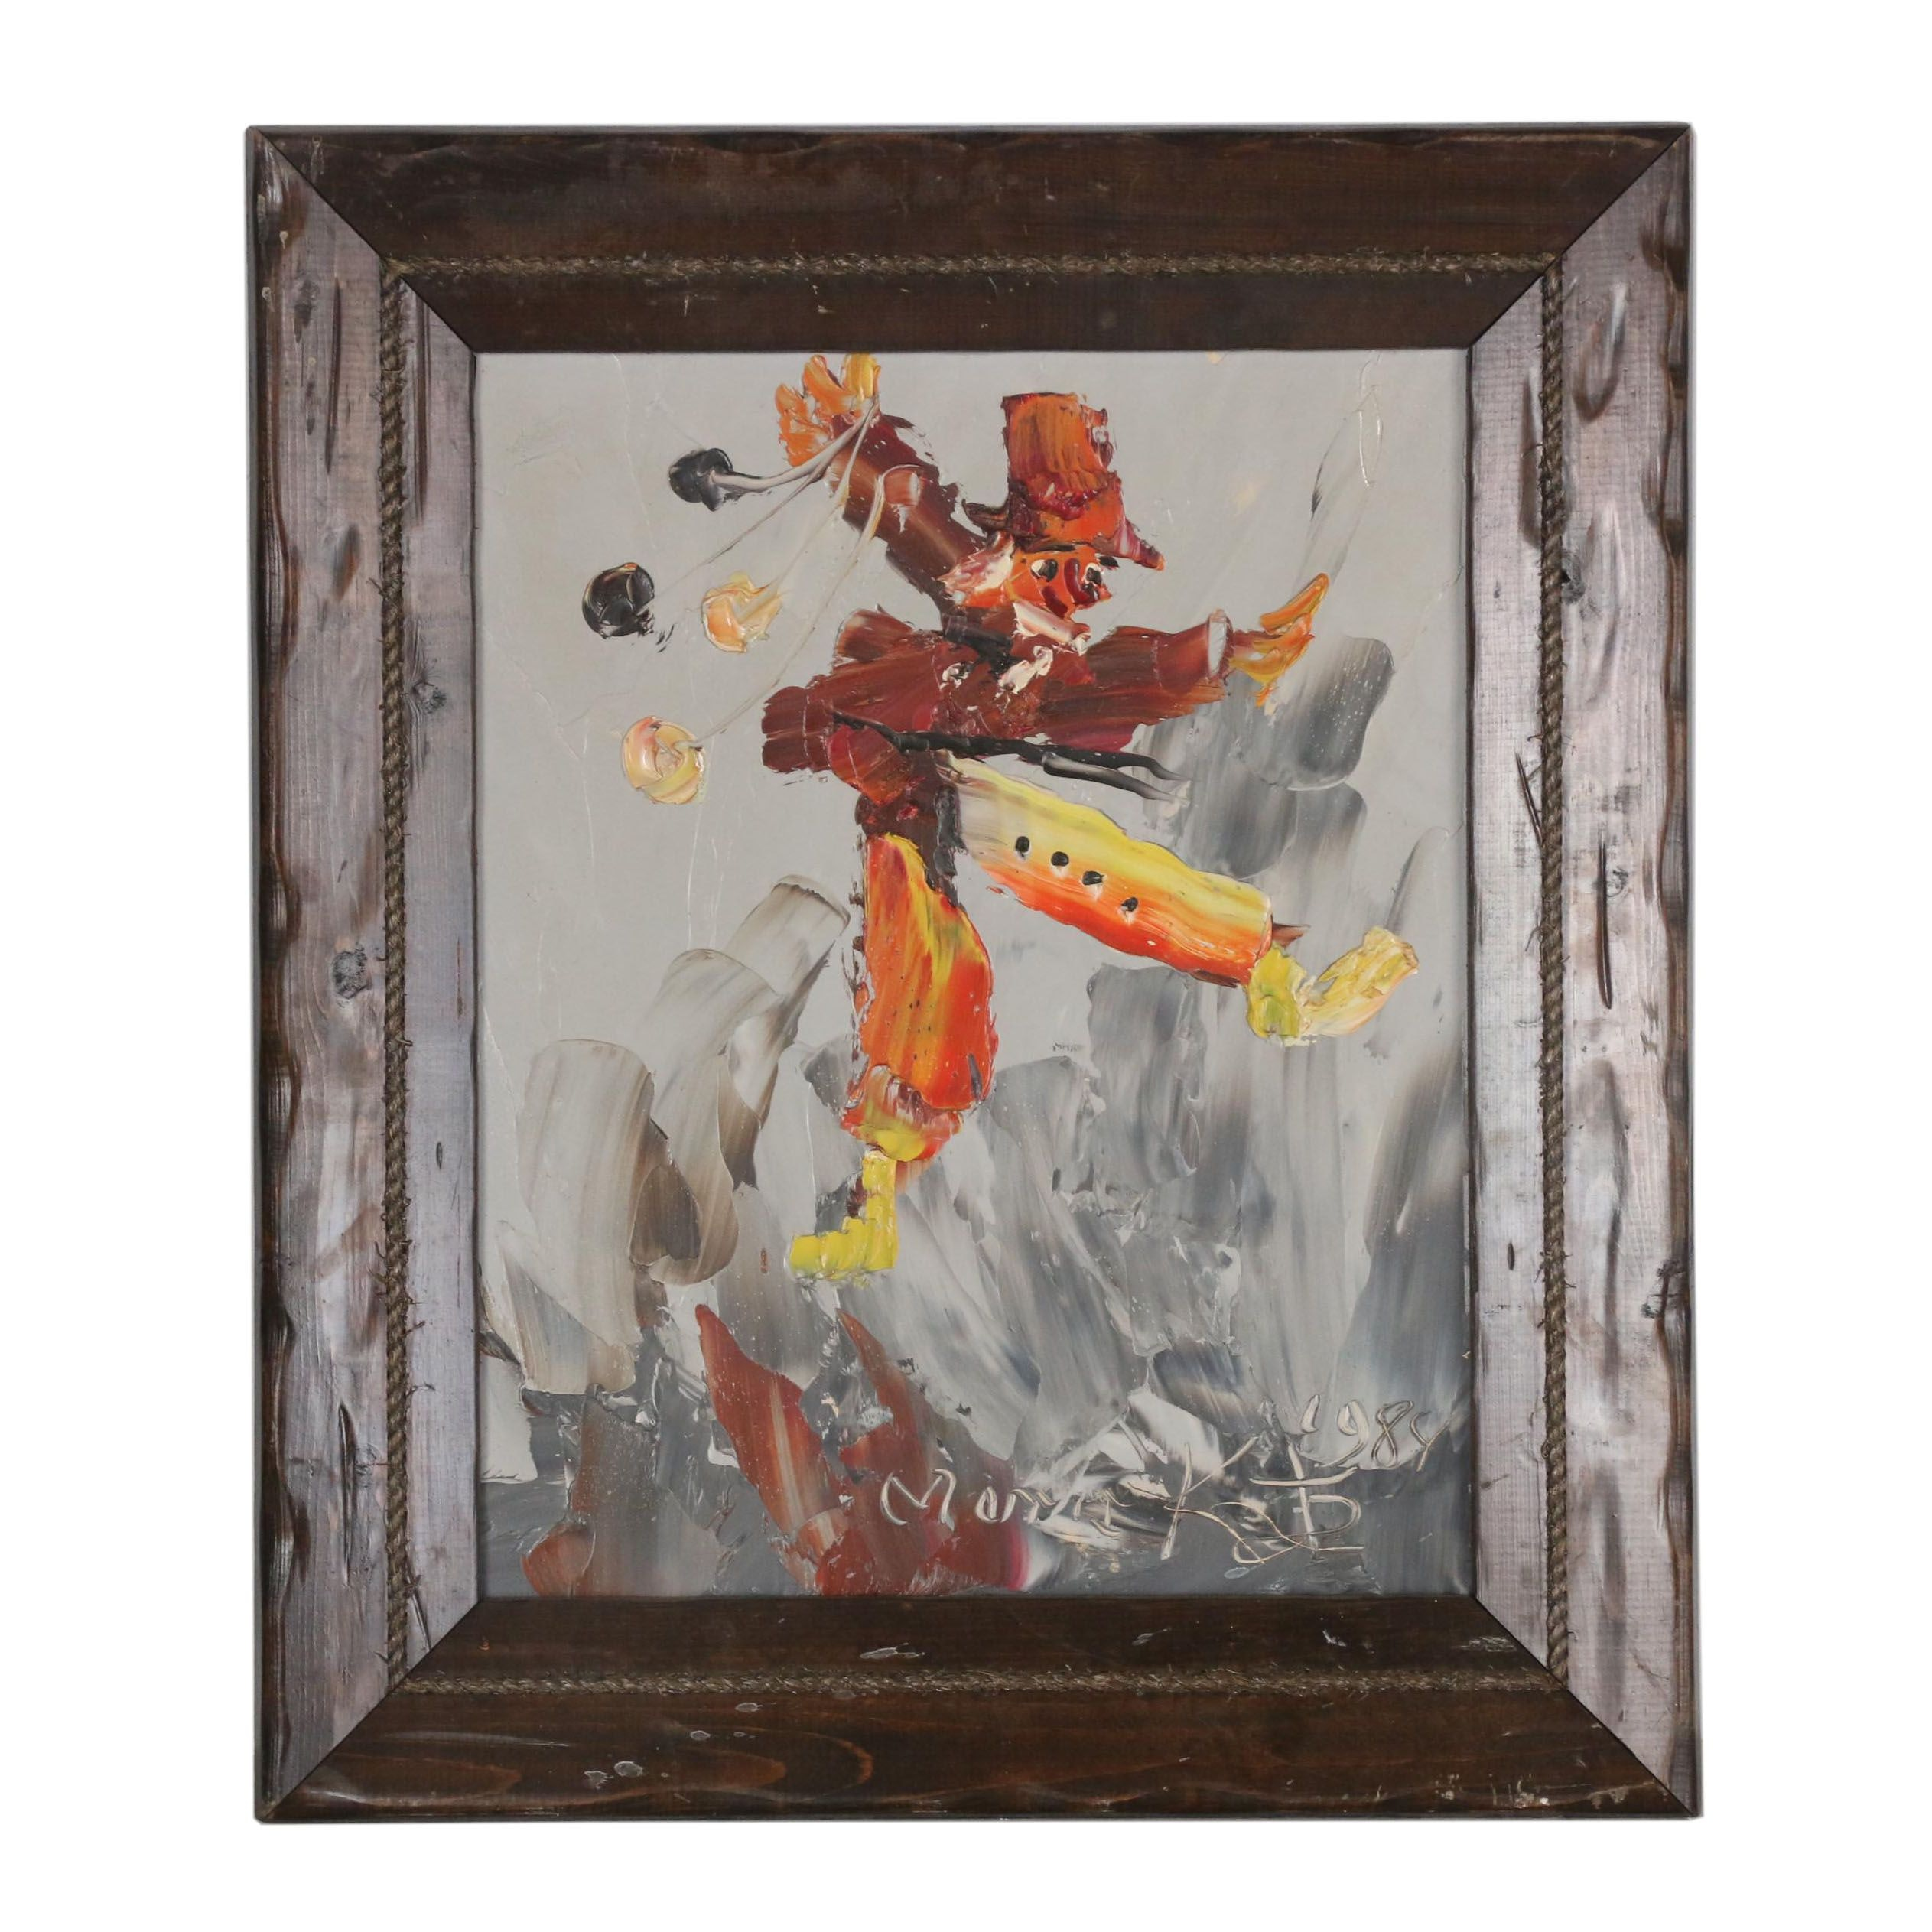 Morris Katz 1984 Abstract Oil Painting of Clown